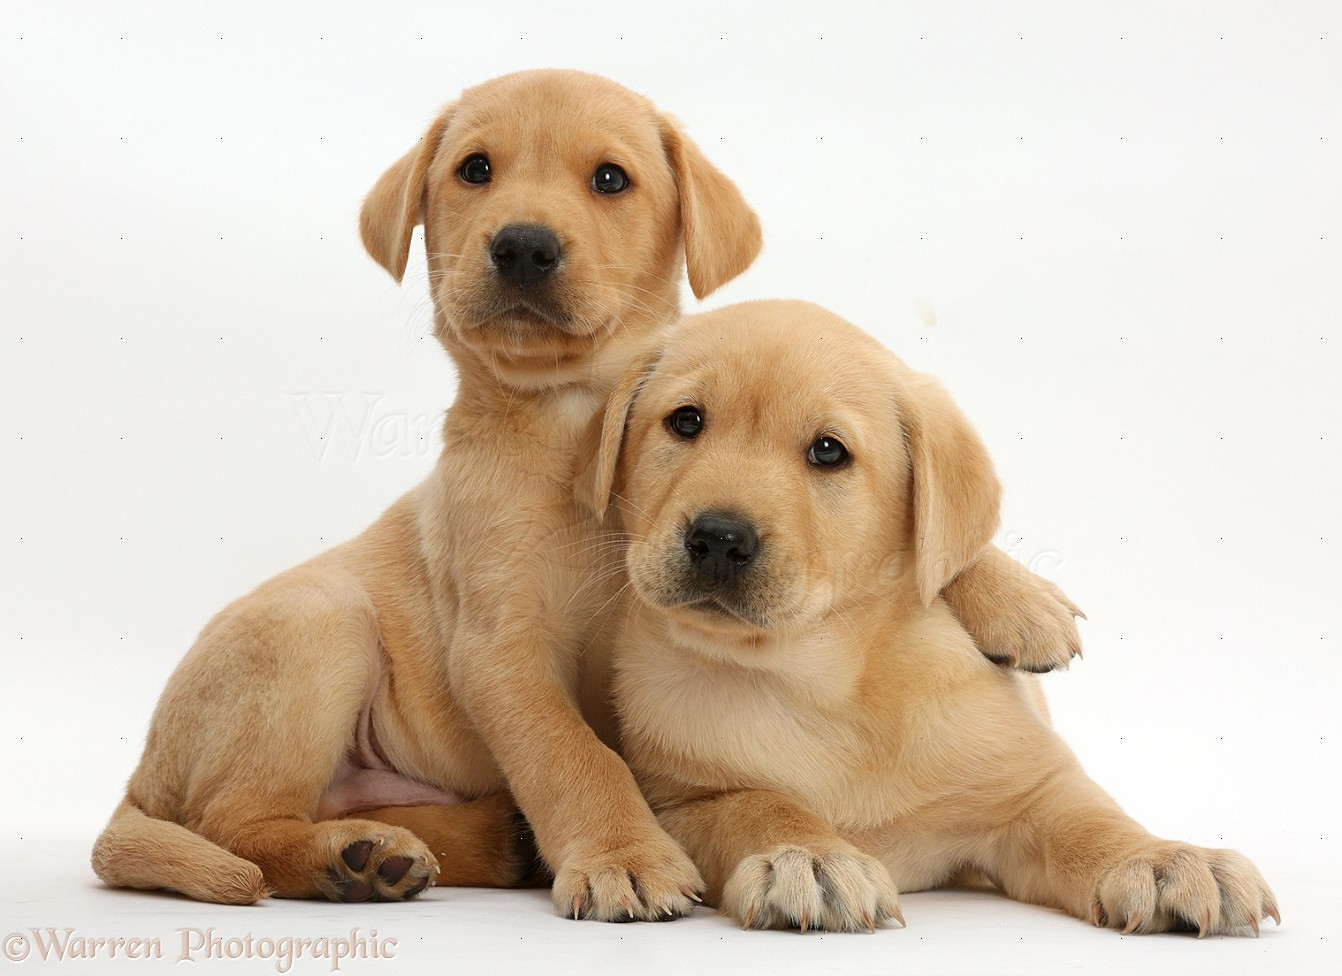 Dogs: Cute Yellow Labrador puppies lounging together photo ...